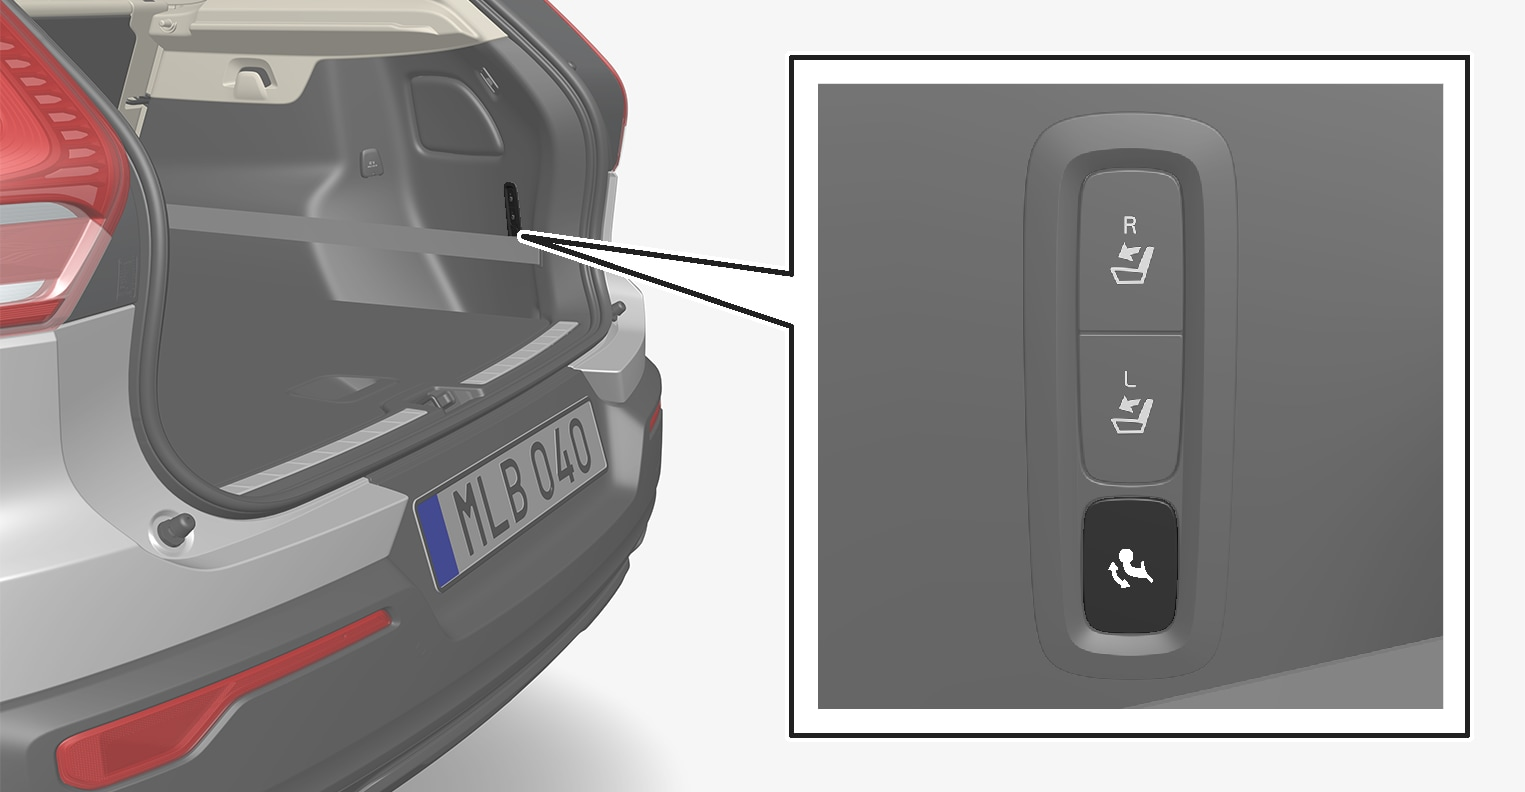 P6-1746-XC40-Swivable towbar switch in trunk